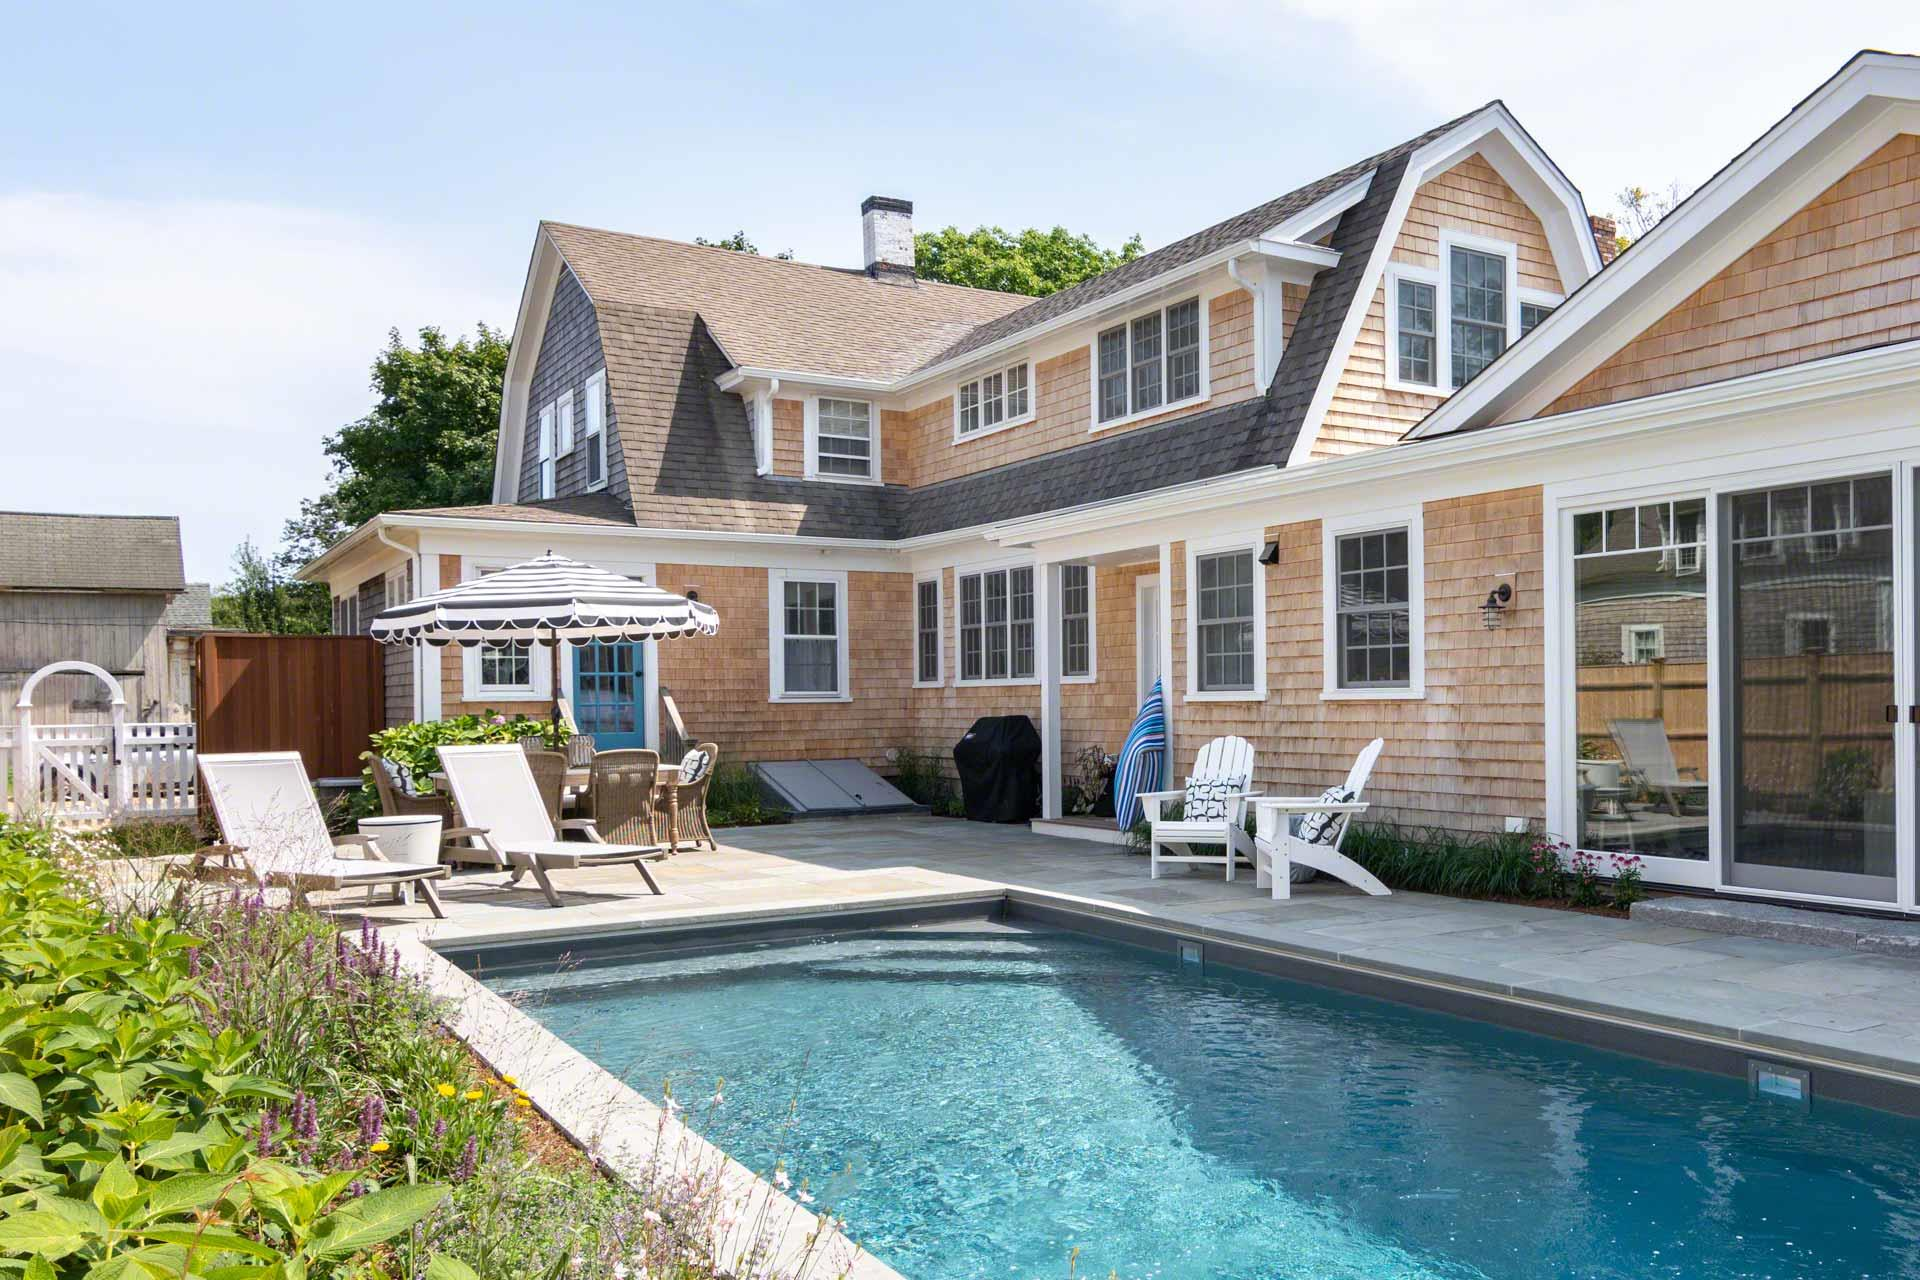 8 Green Avenue, Edgartown Unit: Newly Listed